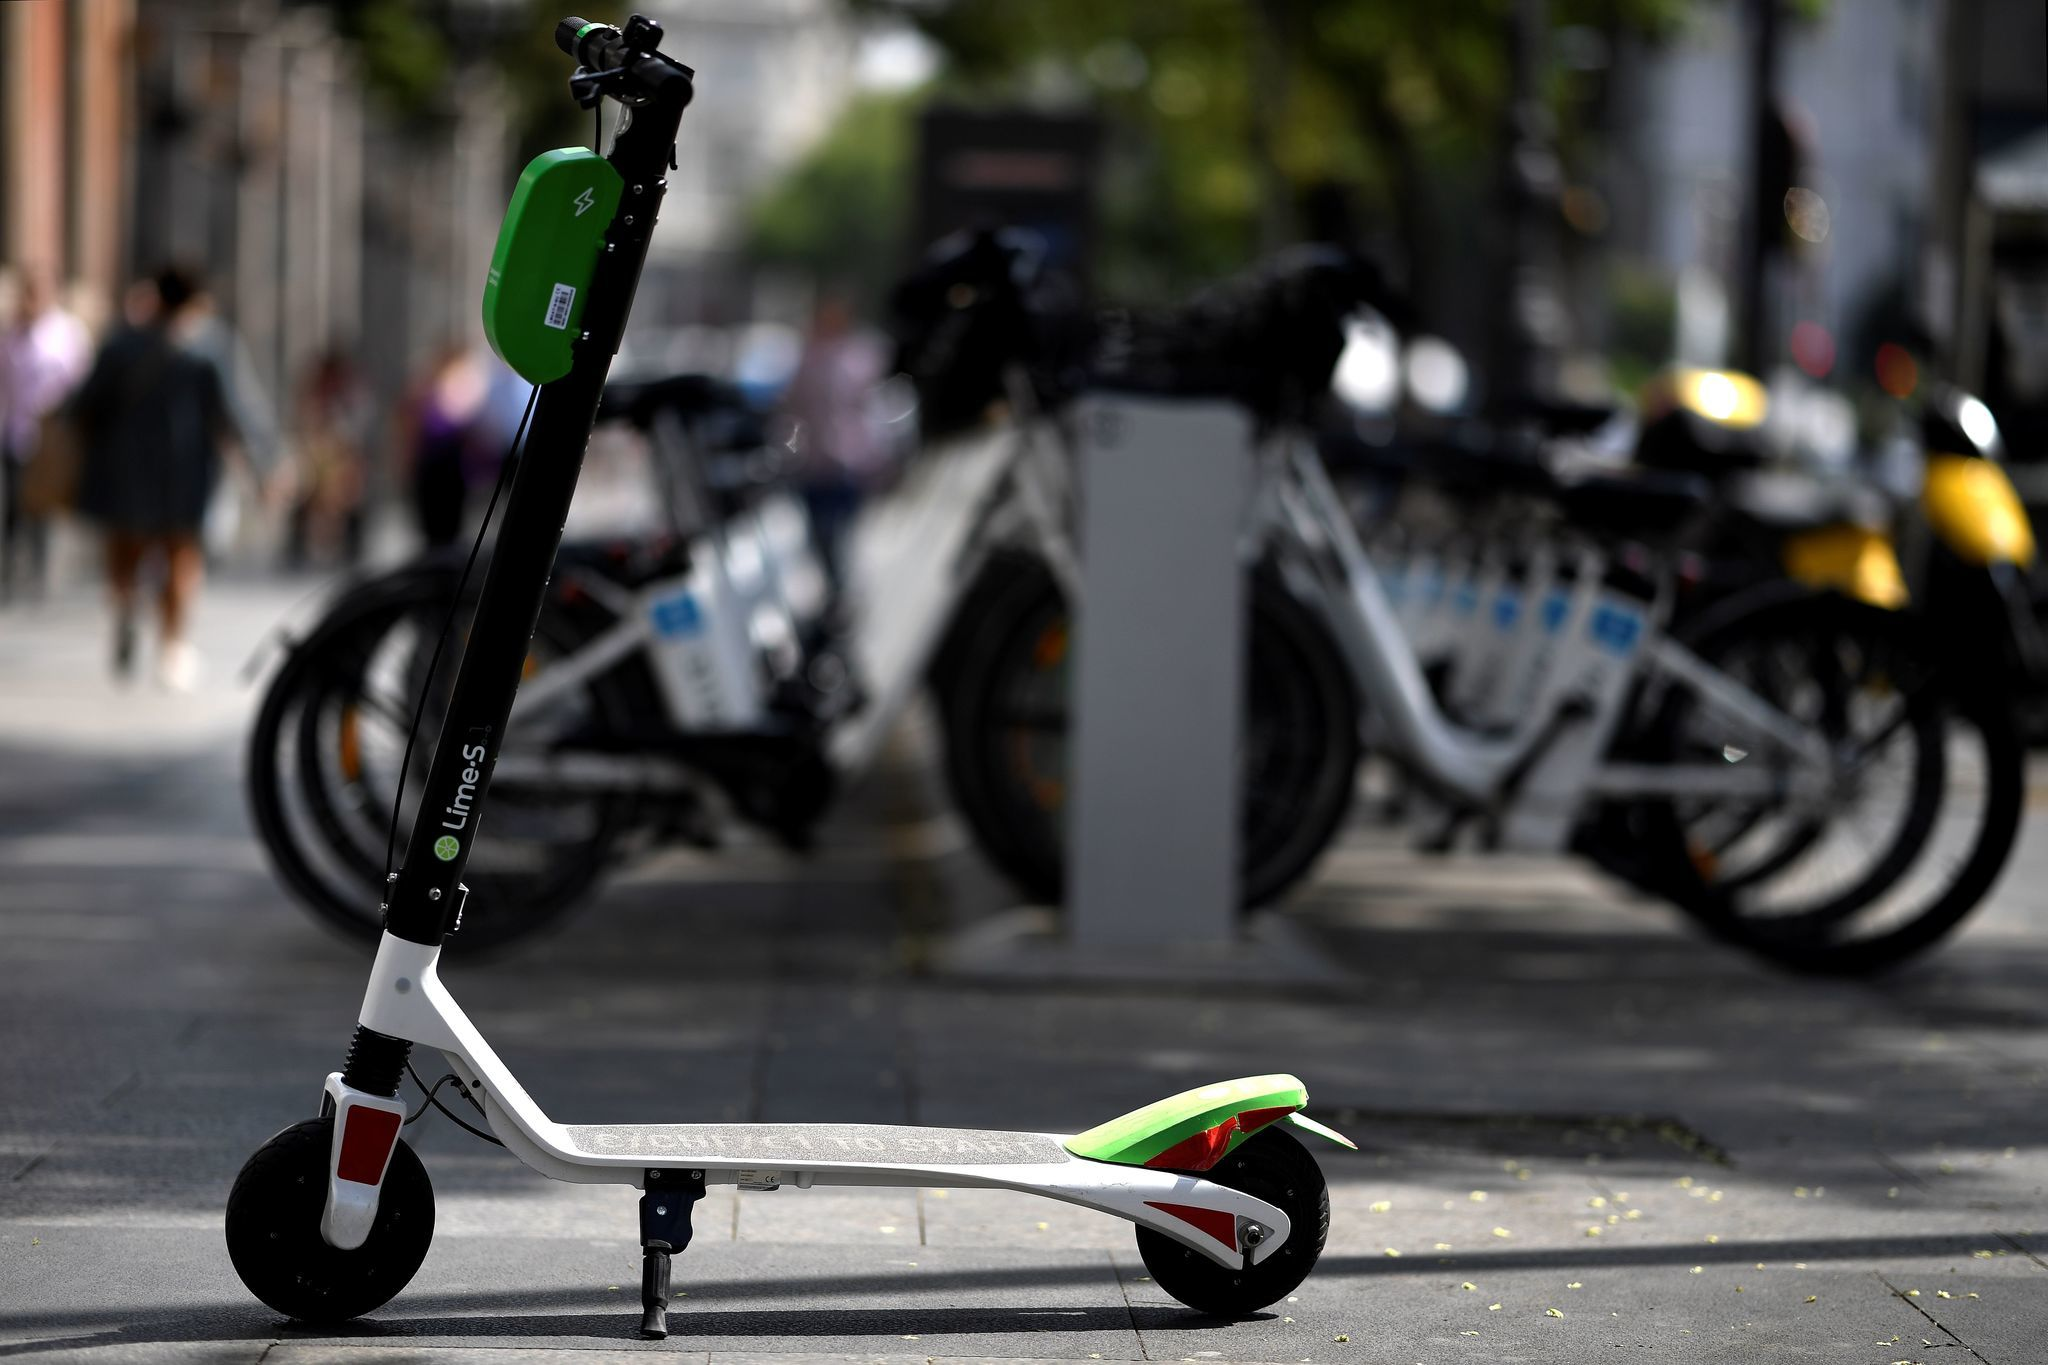 Electric scooter giant Lime launches global recall of one of its models amid fears the scooters can break apart